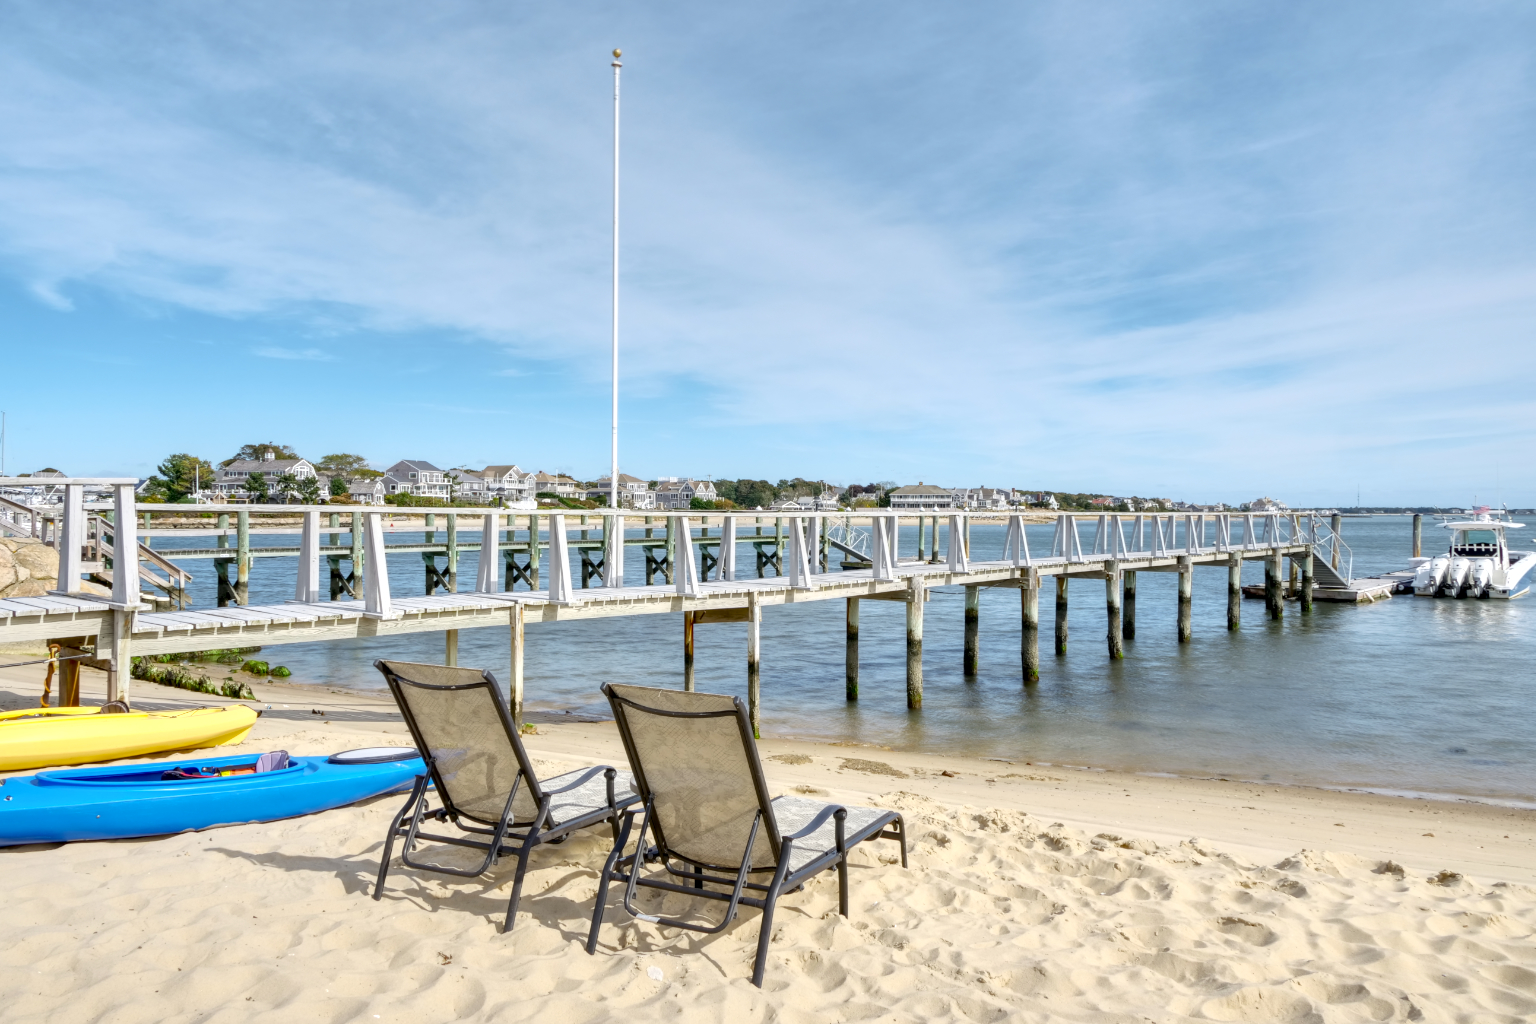 28 Bay Shore Rd Hyannis, Ma 02601 | Listed By Griffin Realty Group | MLS # 22007418